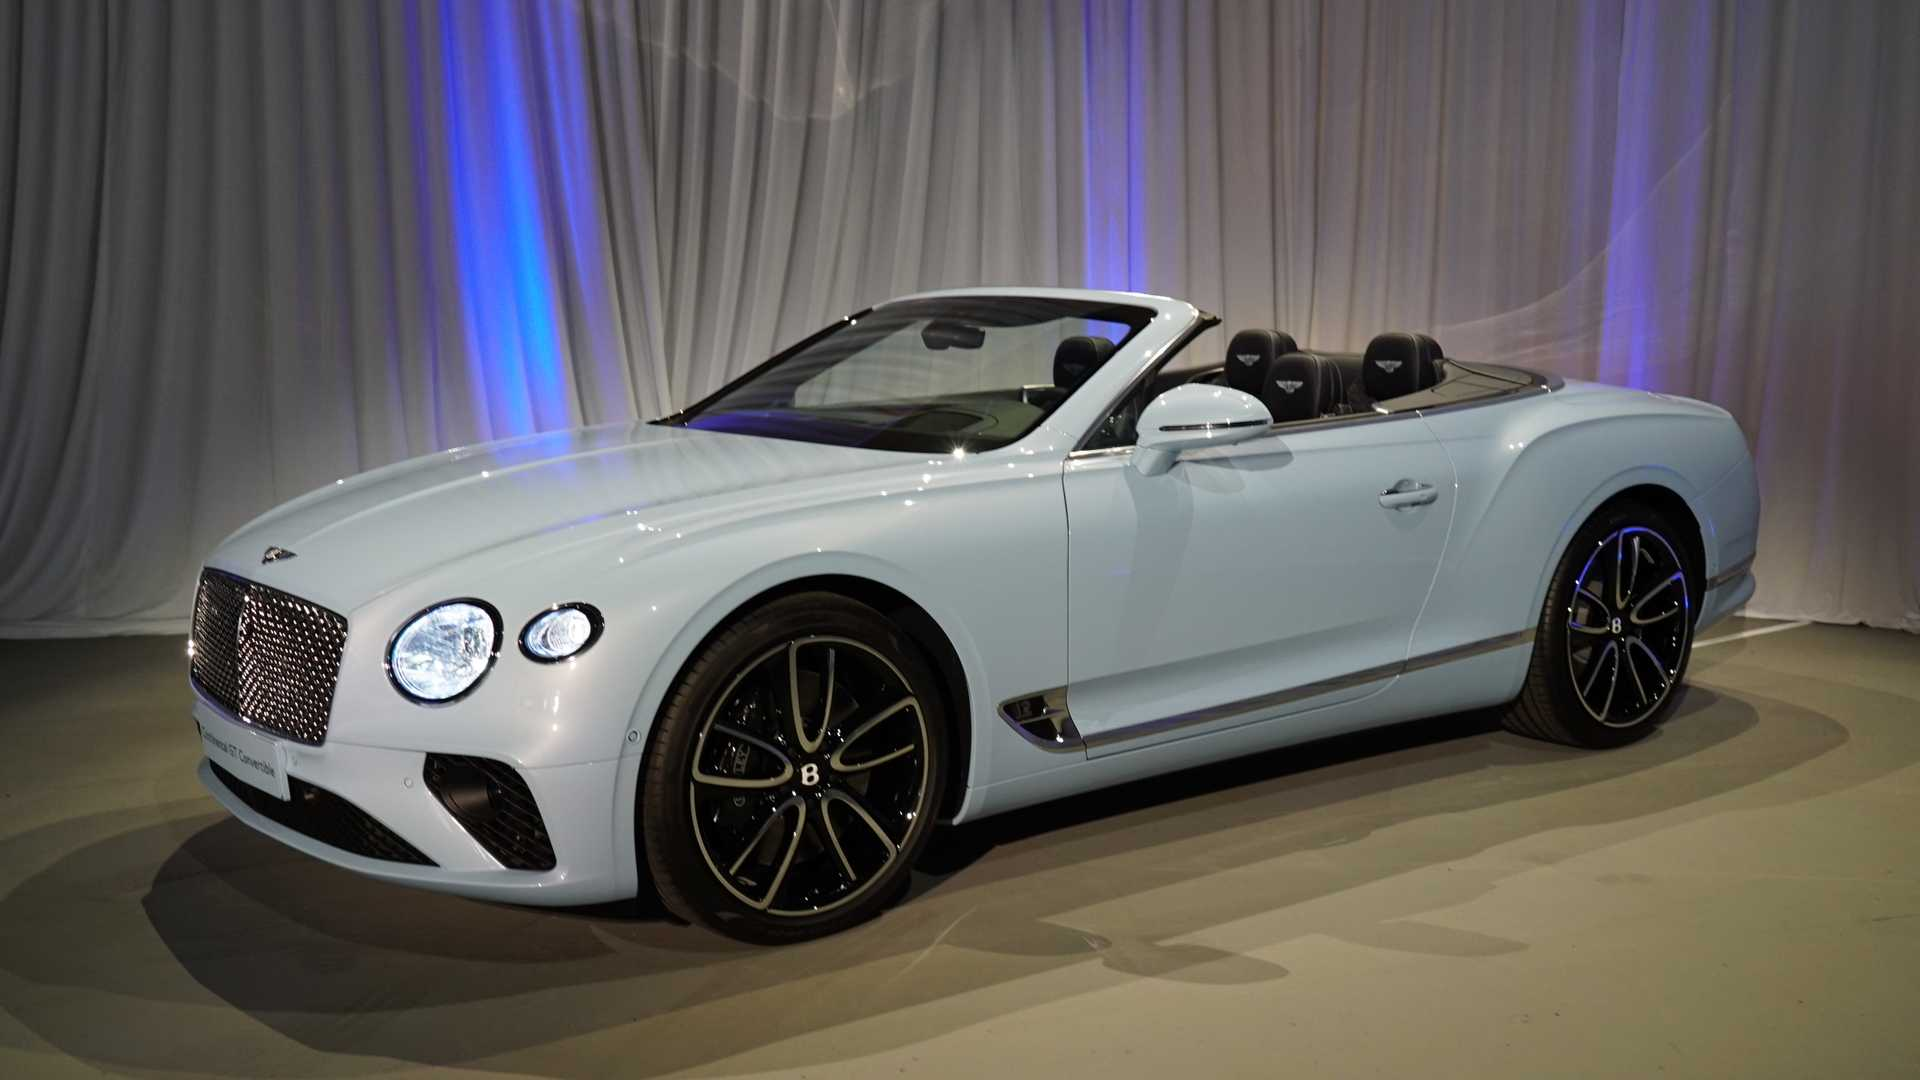 35 All New 2019 Bentley Continental Gt Weight Exterior And Interior